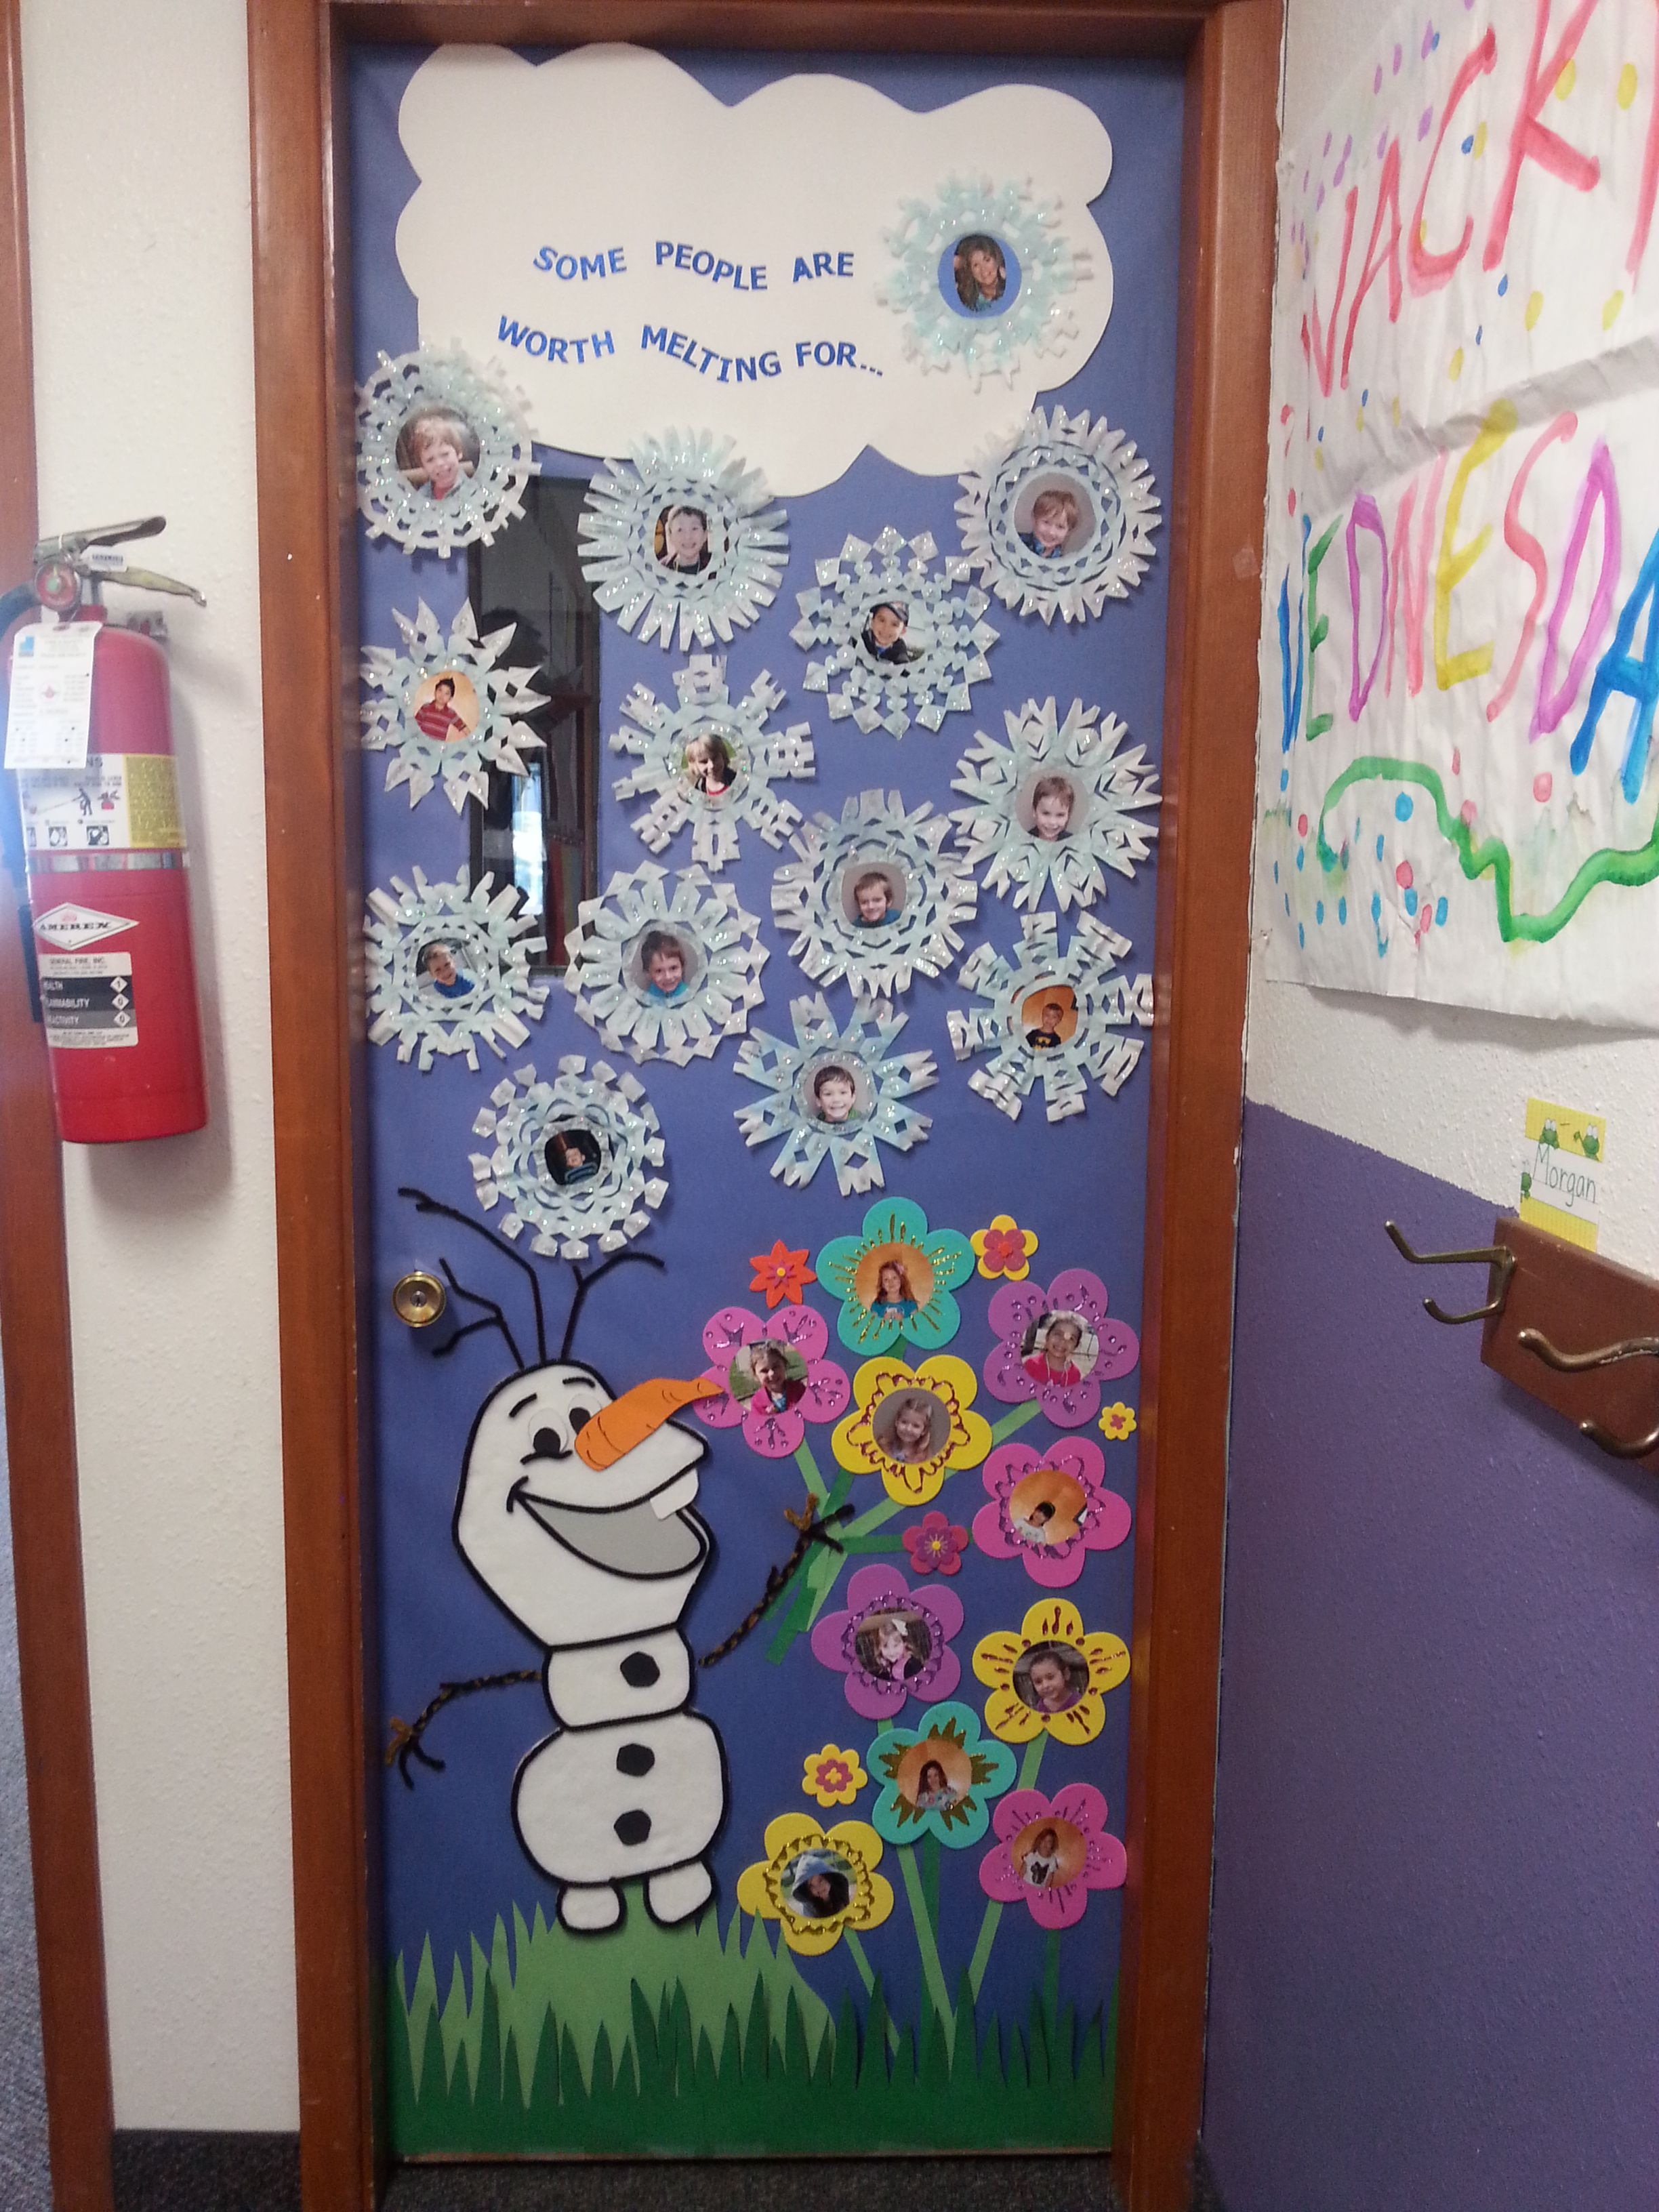 January classroom door decoration ideas - Season Change Winter To Spring Our Frozen Themed Door Decoration For Teacher Appreciation Week I Think It Turned Out So Cute